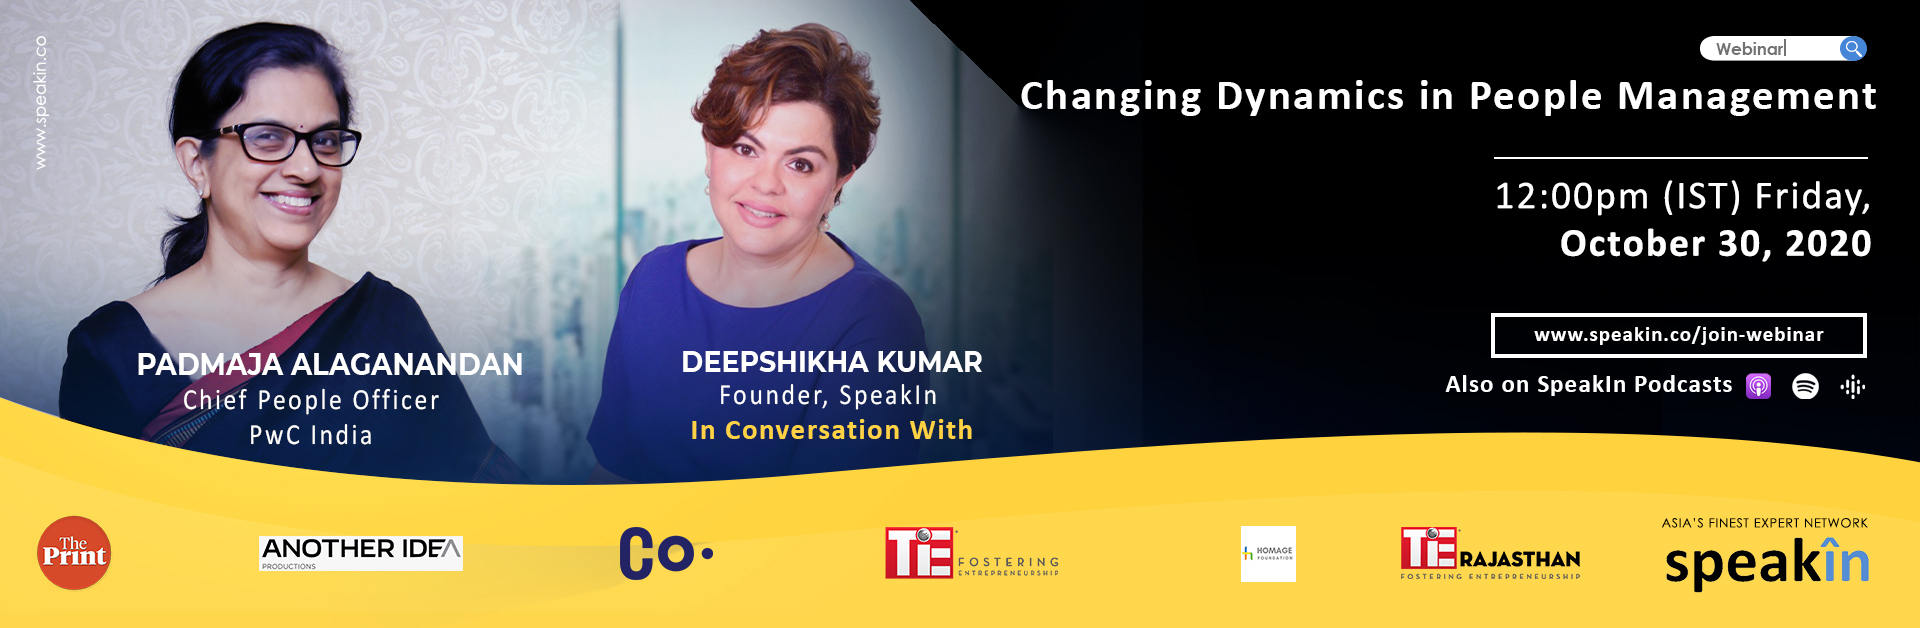 Changing Dynamics in People Management